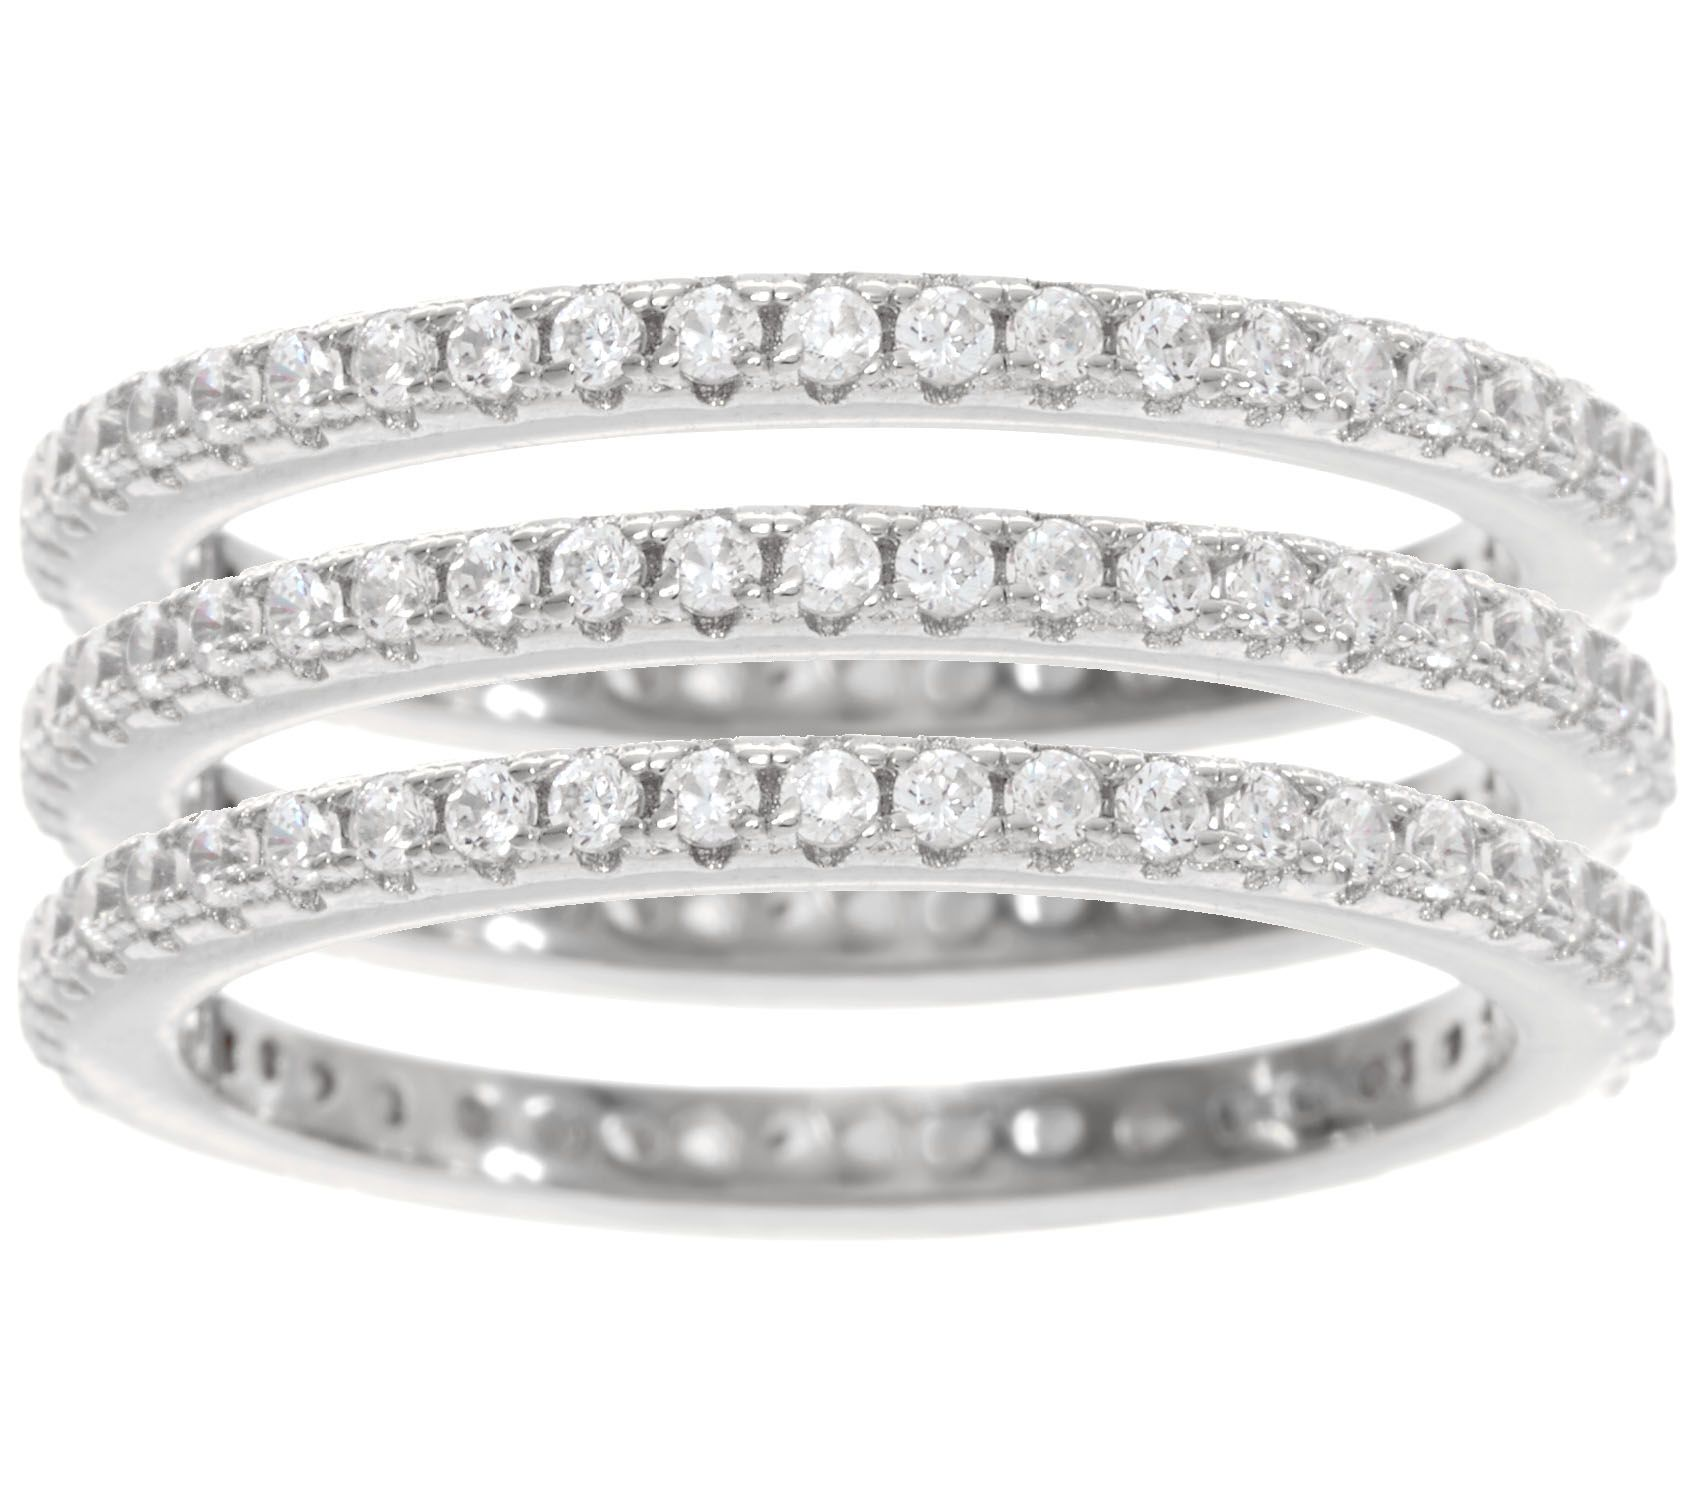 Diamonique Set Of 3 Eternity Band Rings, Sterling Or Tricolor  Page 1 —  Qvc